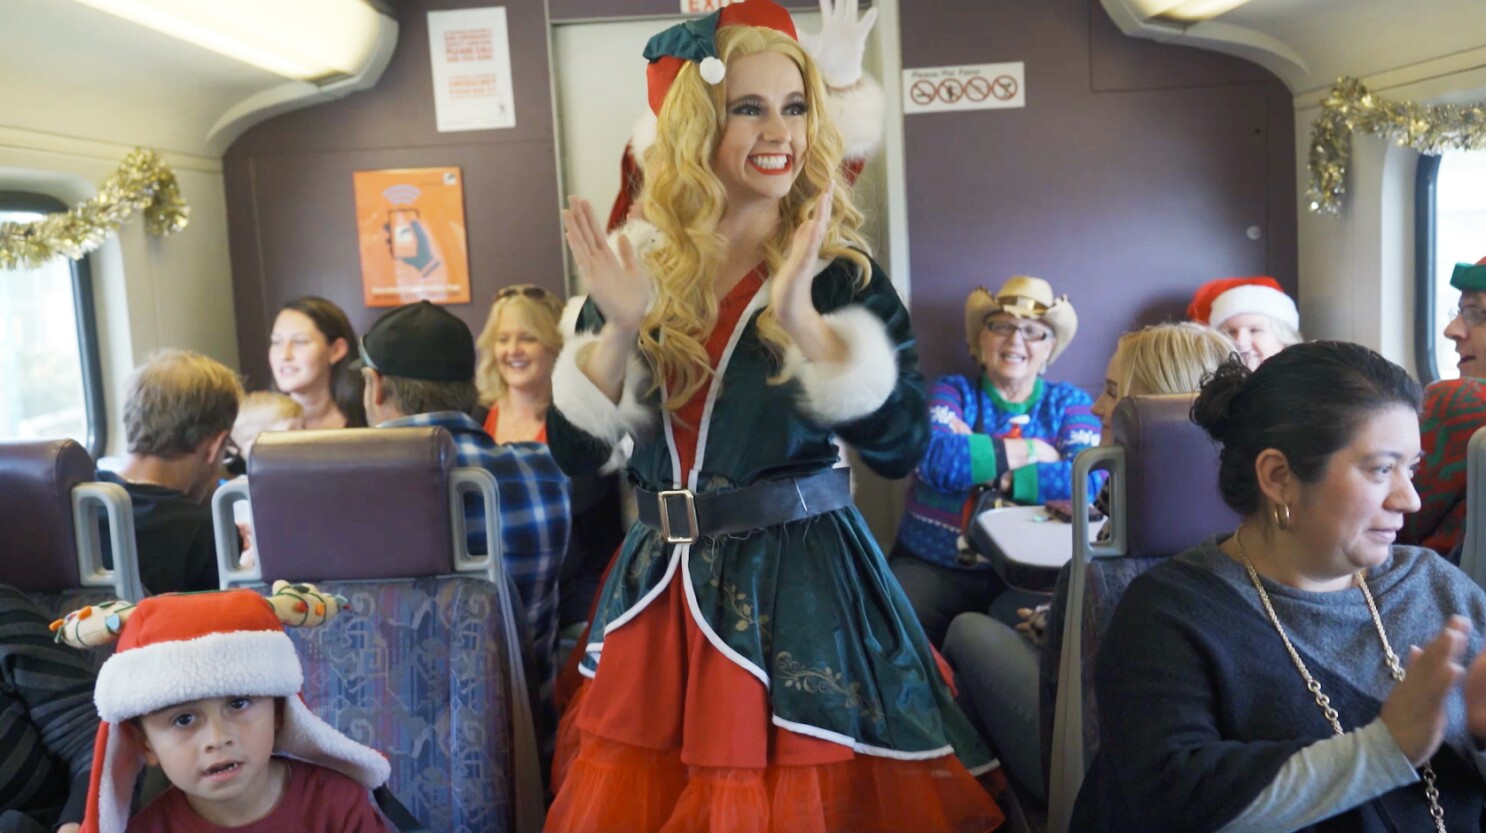 Metrolink Christmas Train 2020 Metrolink's Holiday Express trains bring weekend rides to the L.A.